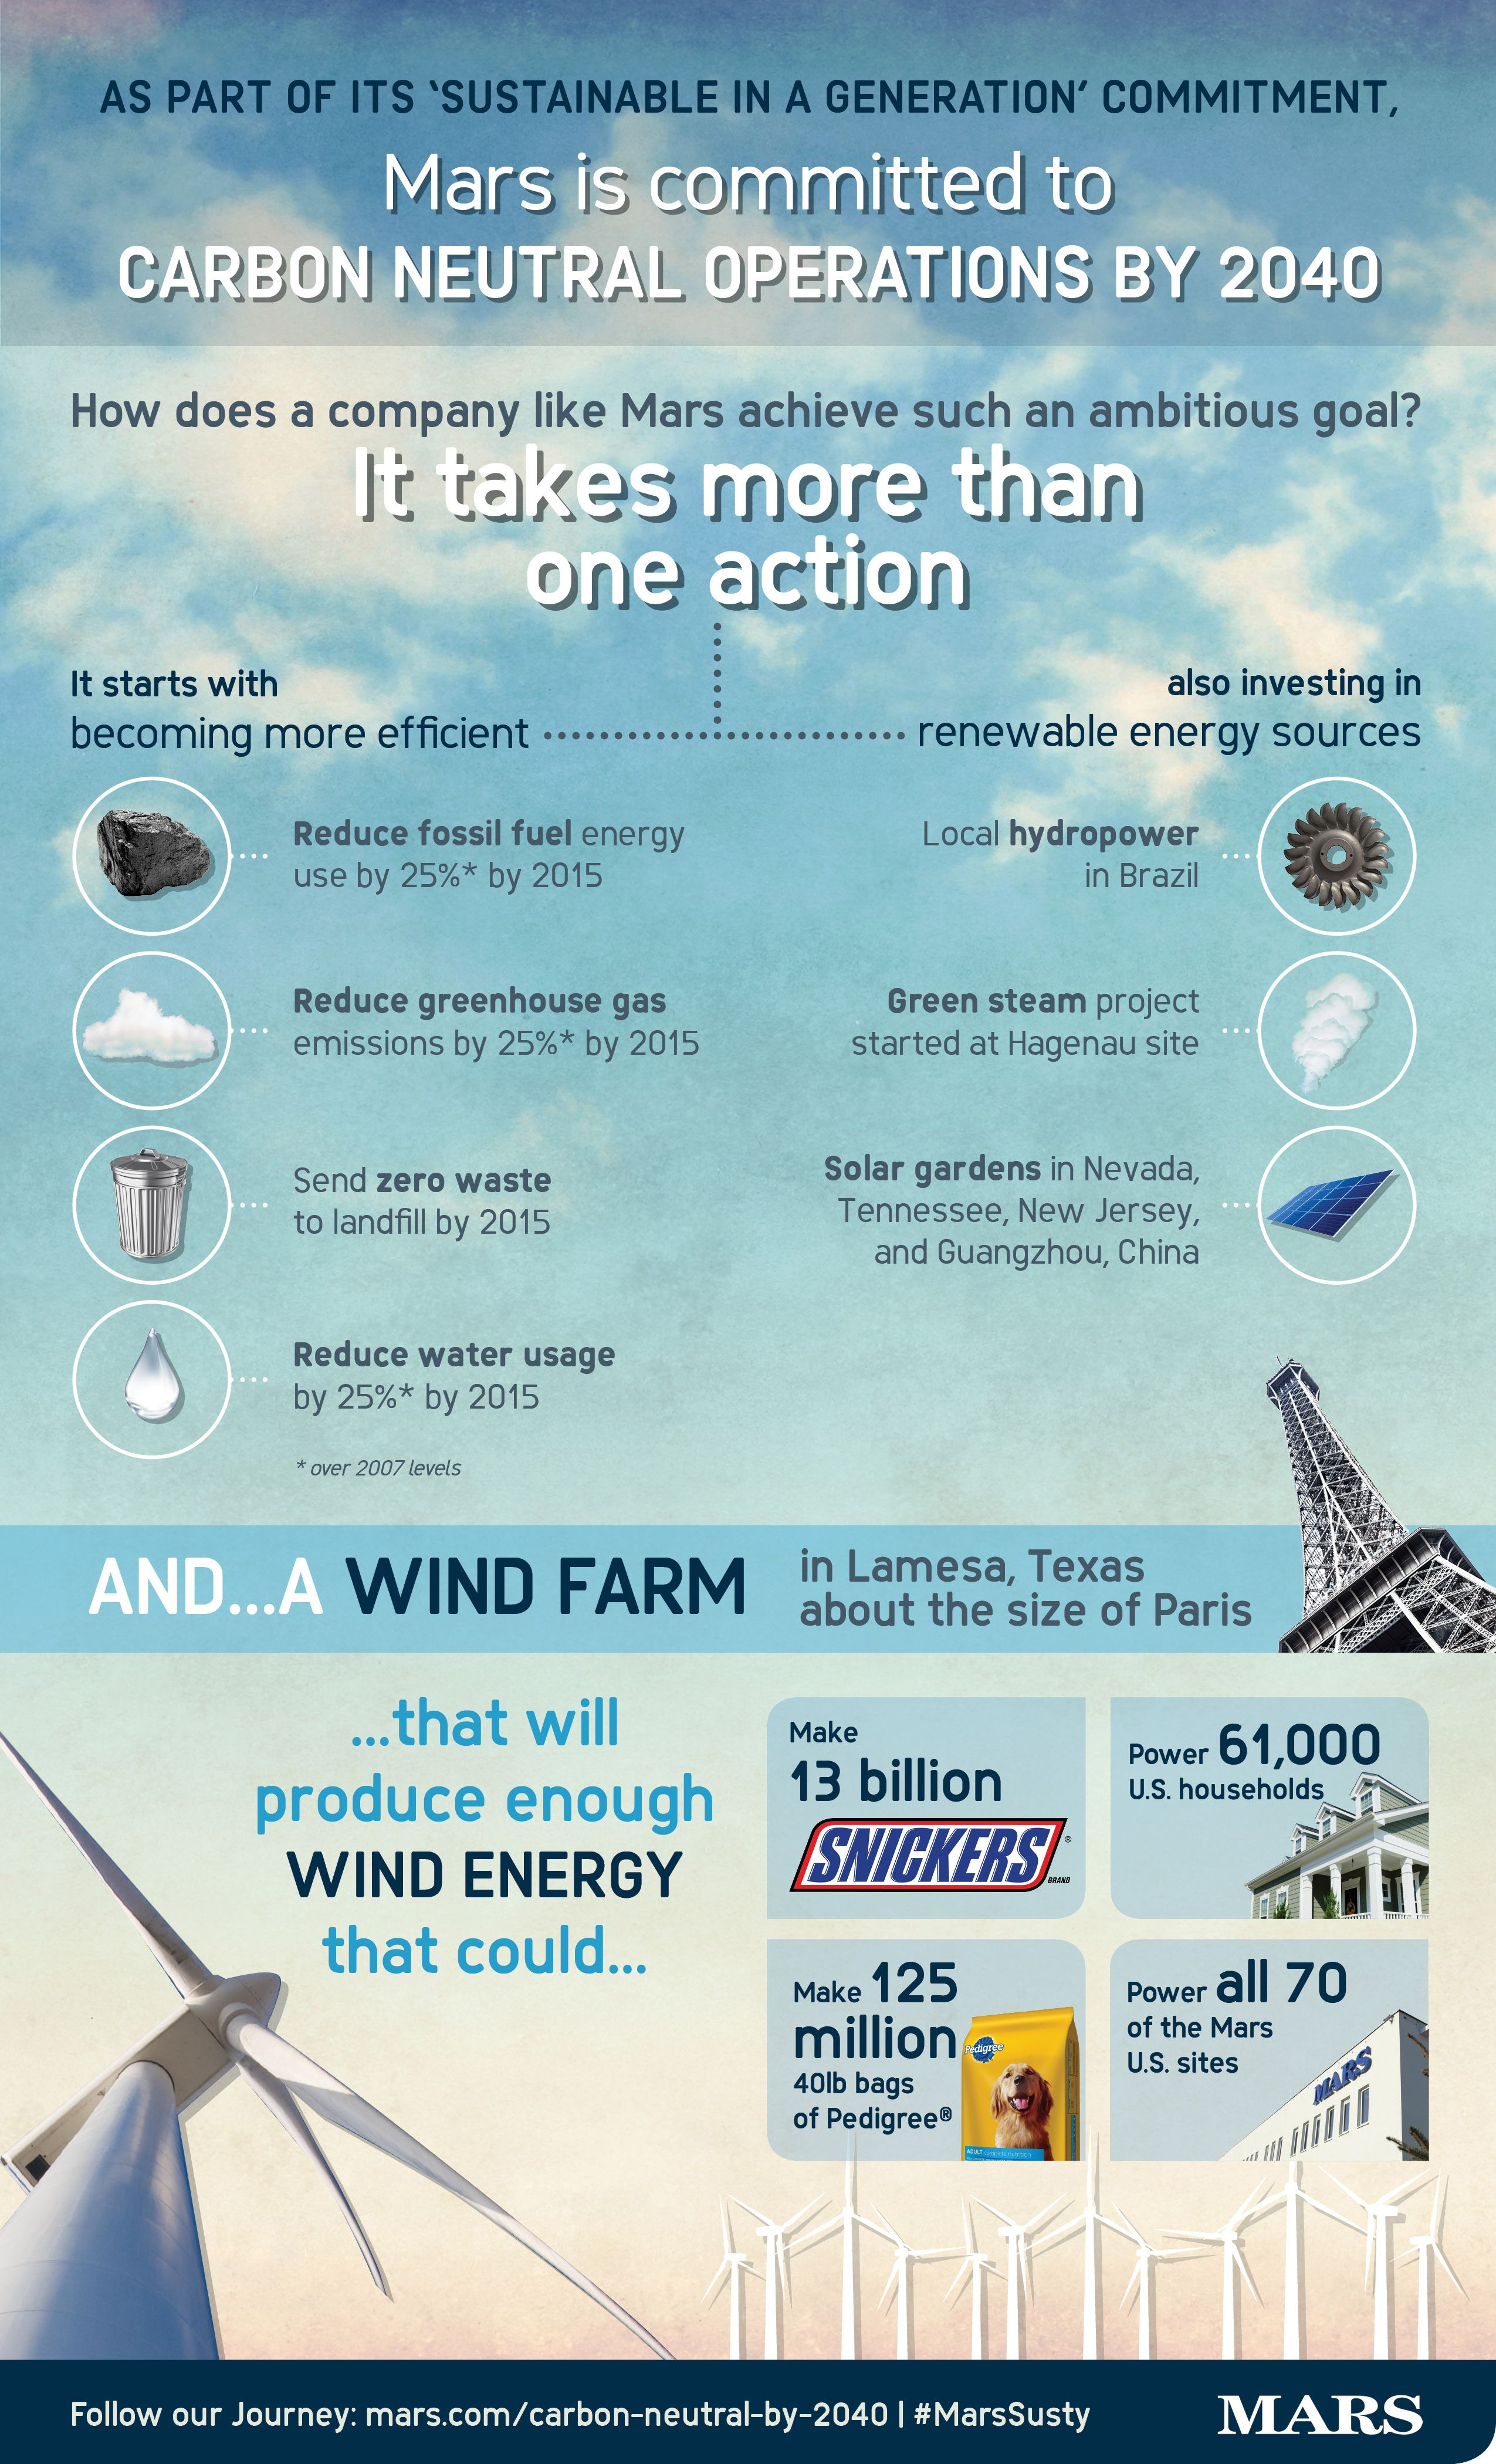 Pin By American Heritage Chocolate On American Heritage Chocolate Sustainability Renewable Sources Of Energy Wind Farm American Heritage